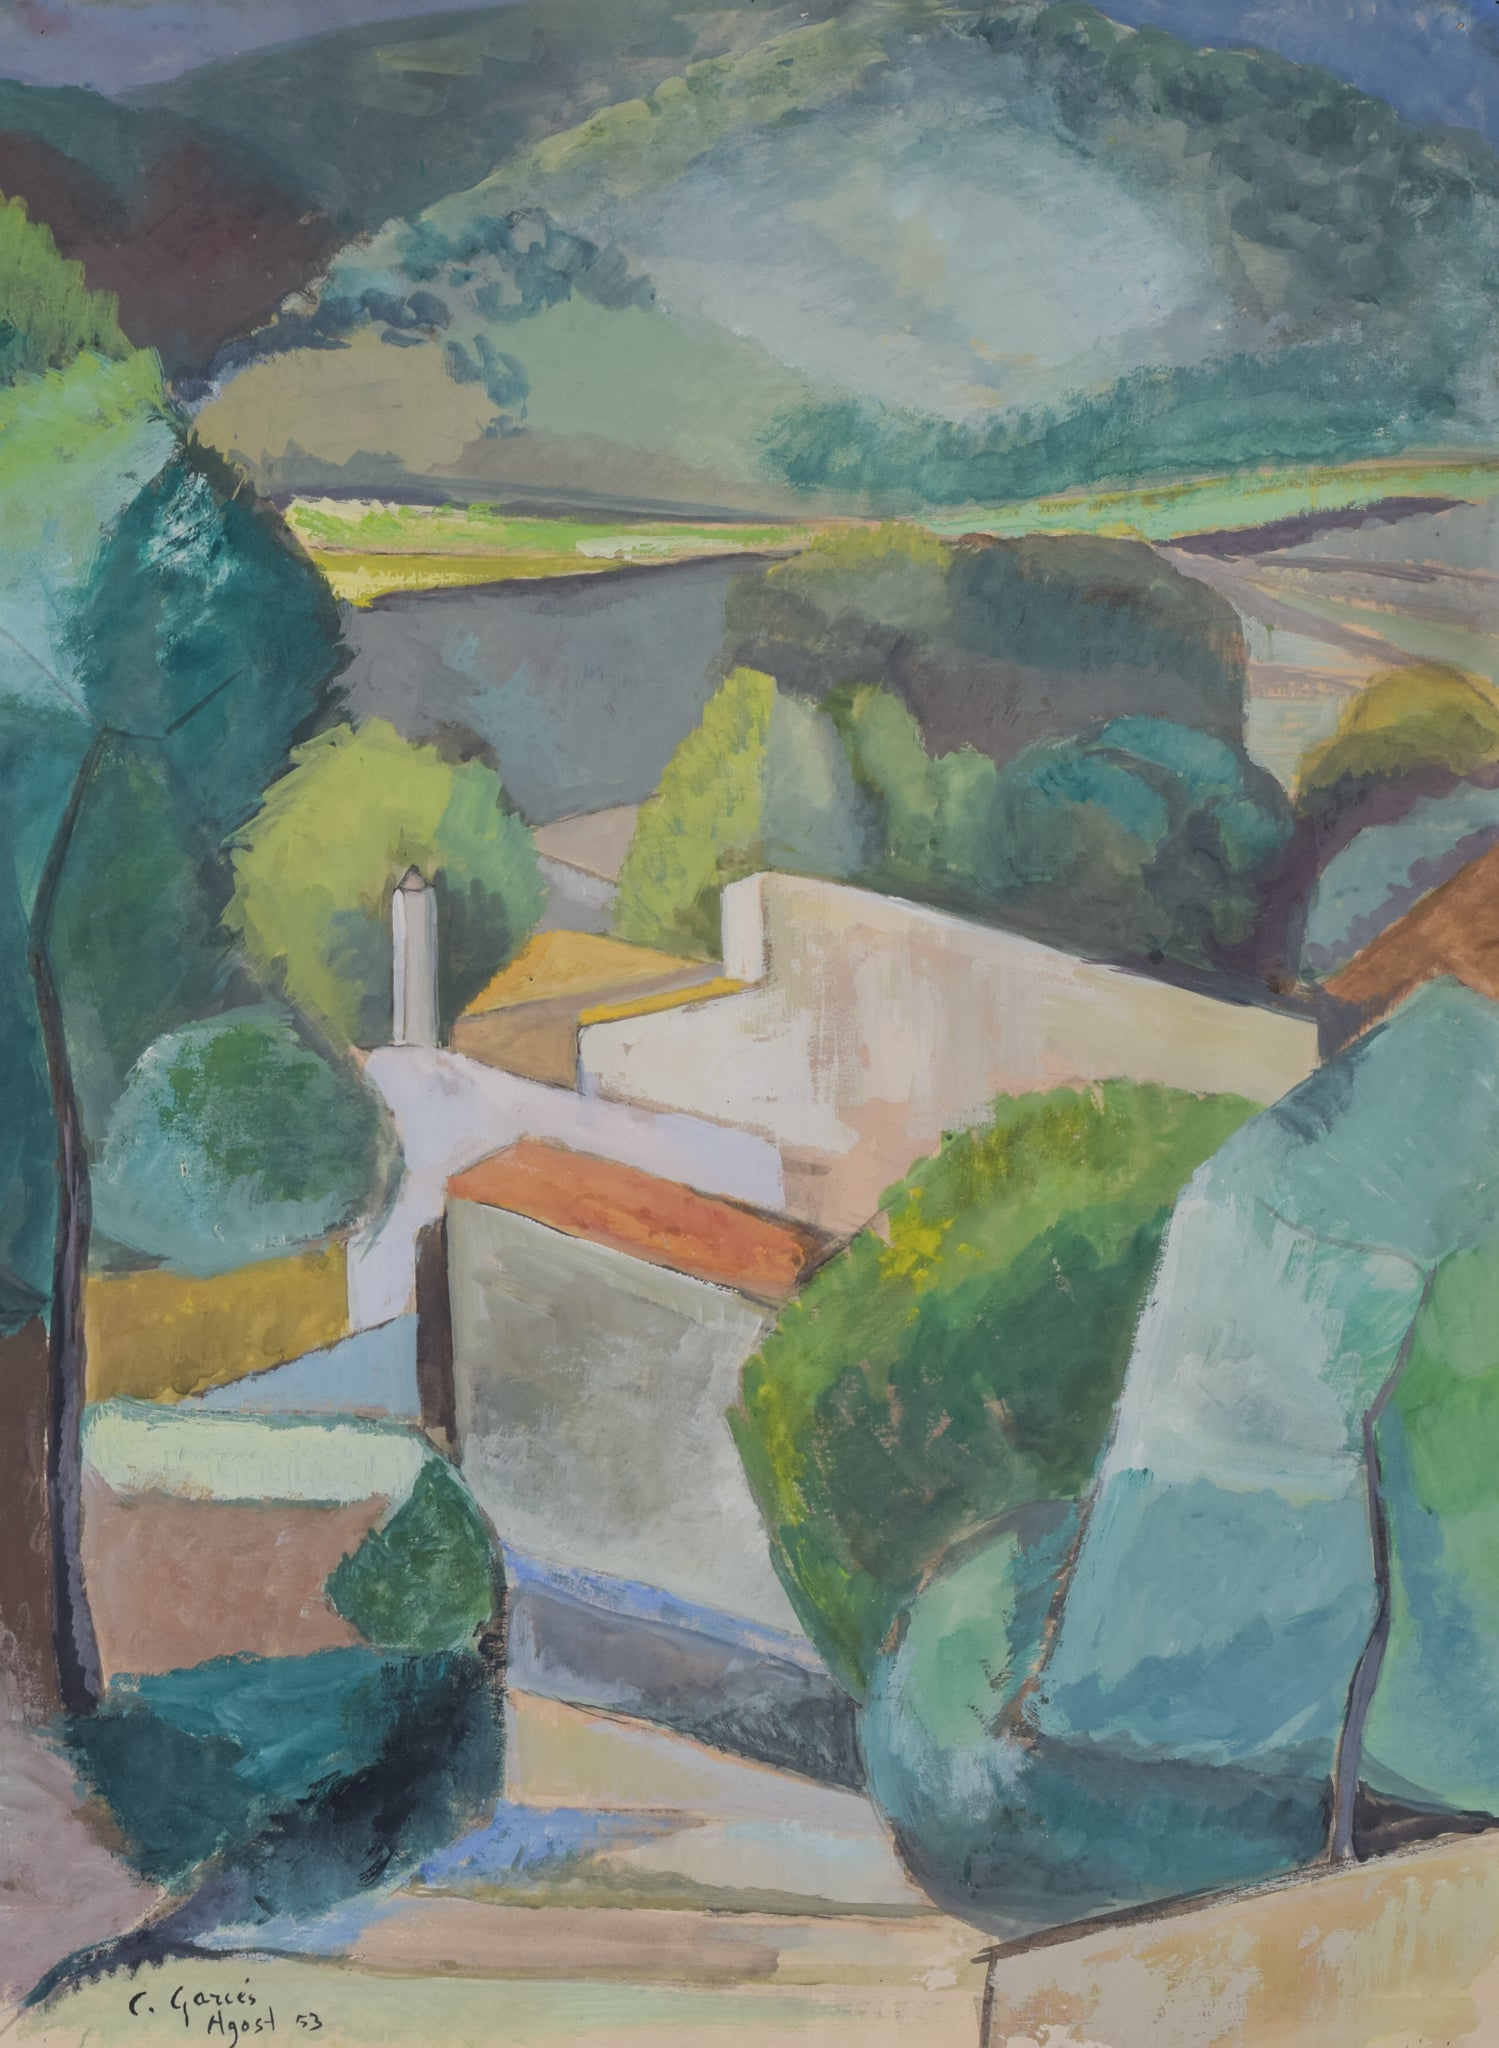 Cubist Village in a Mountain Landscape